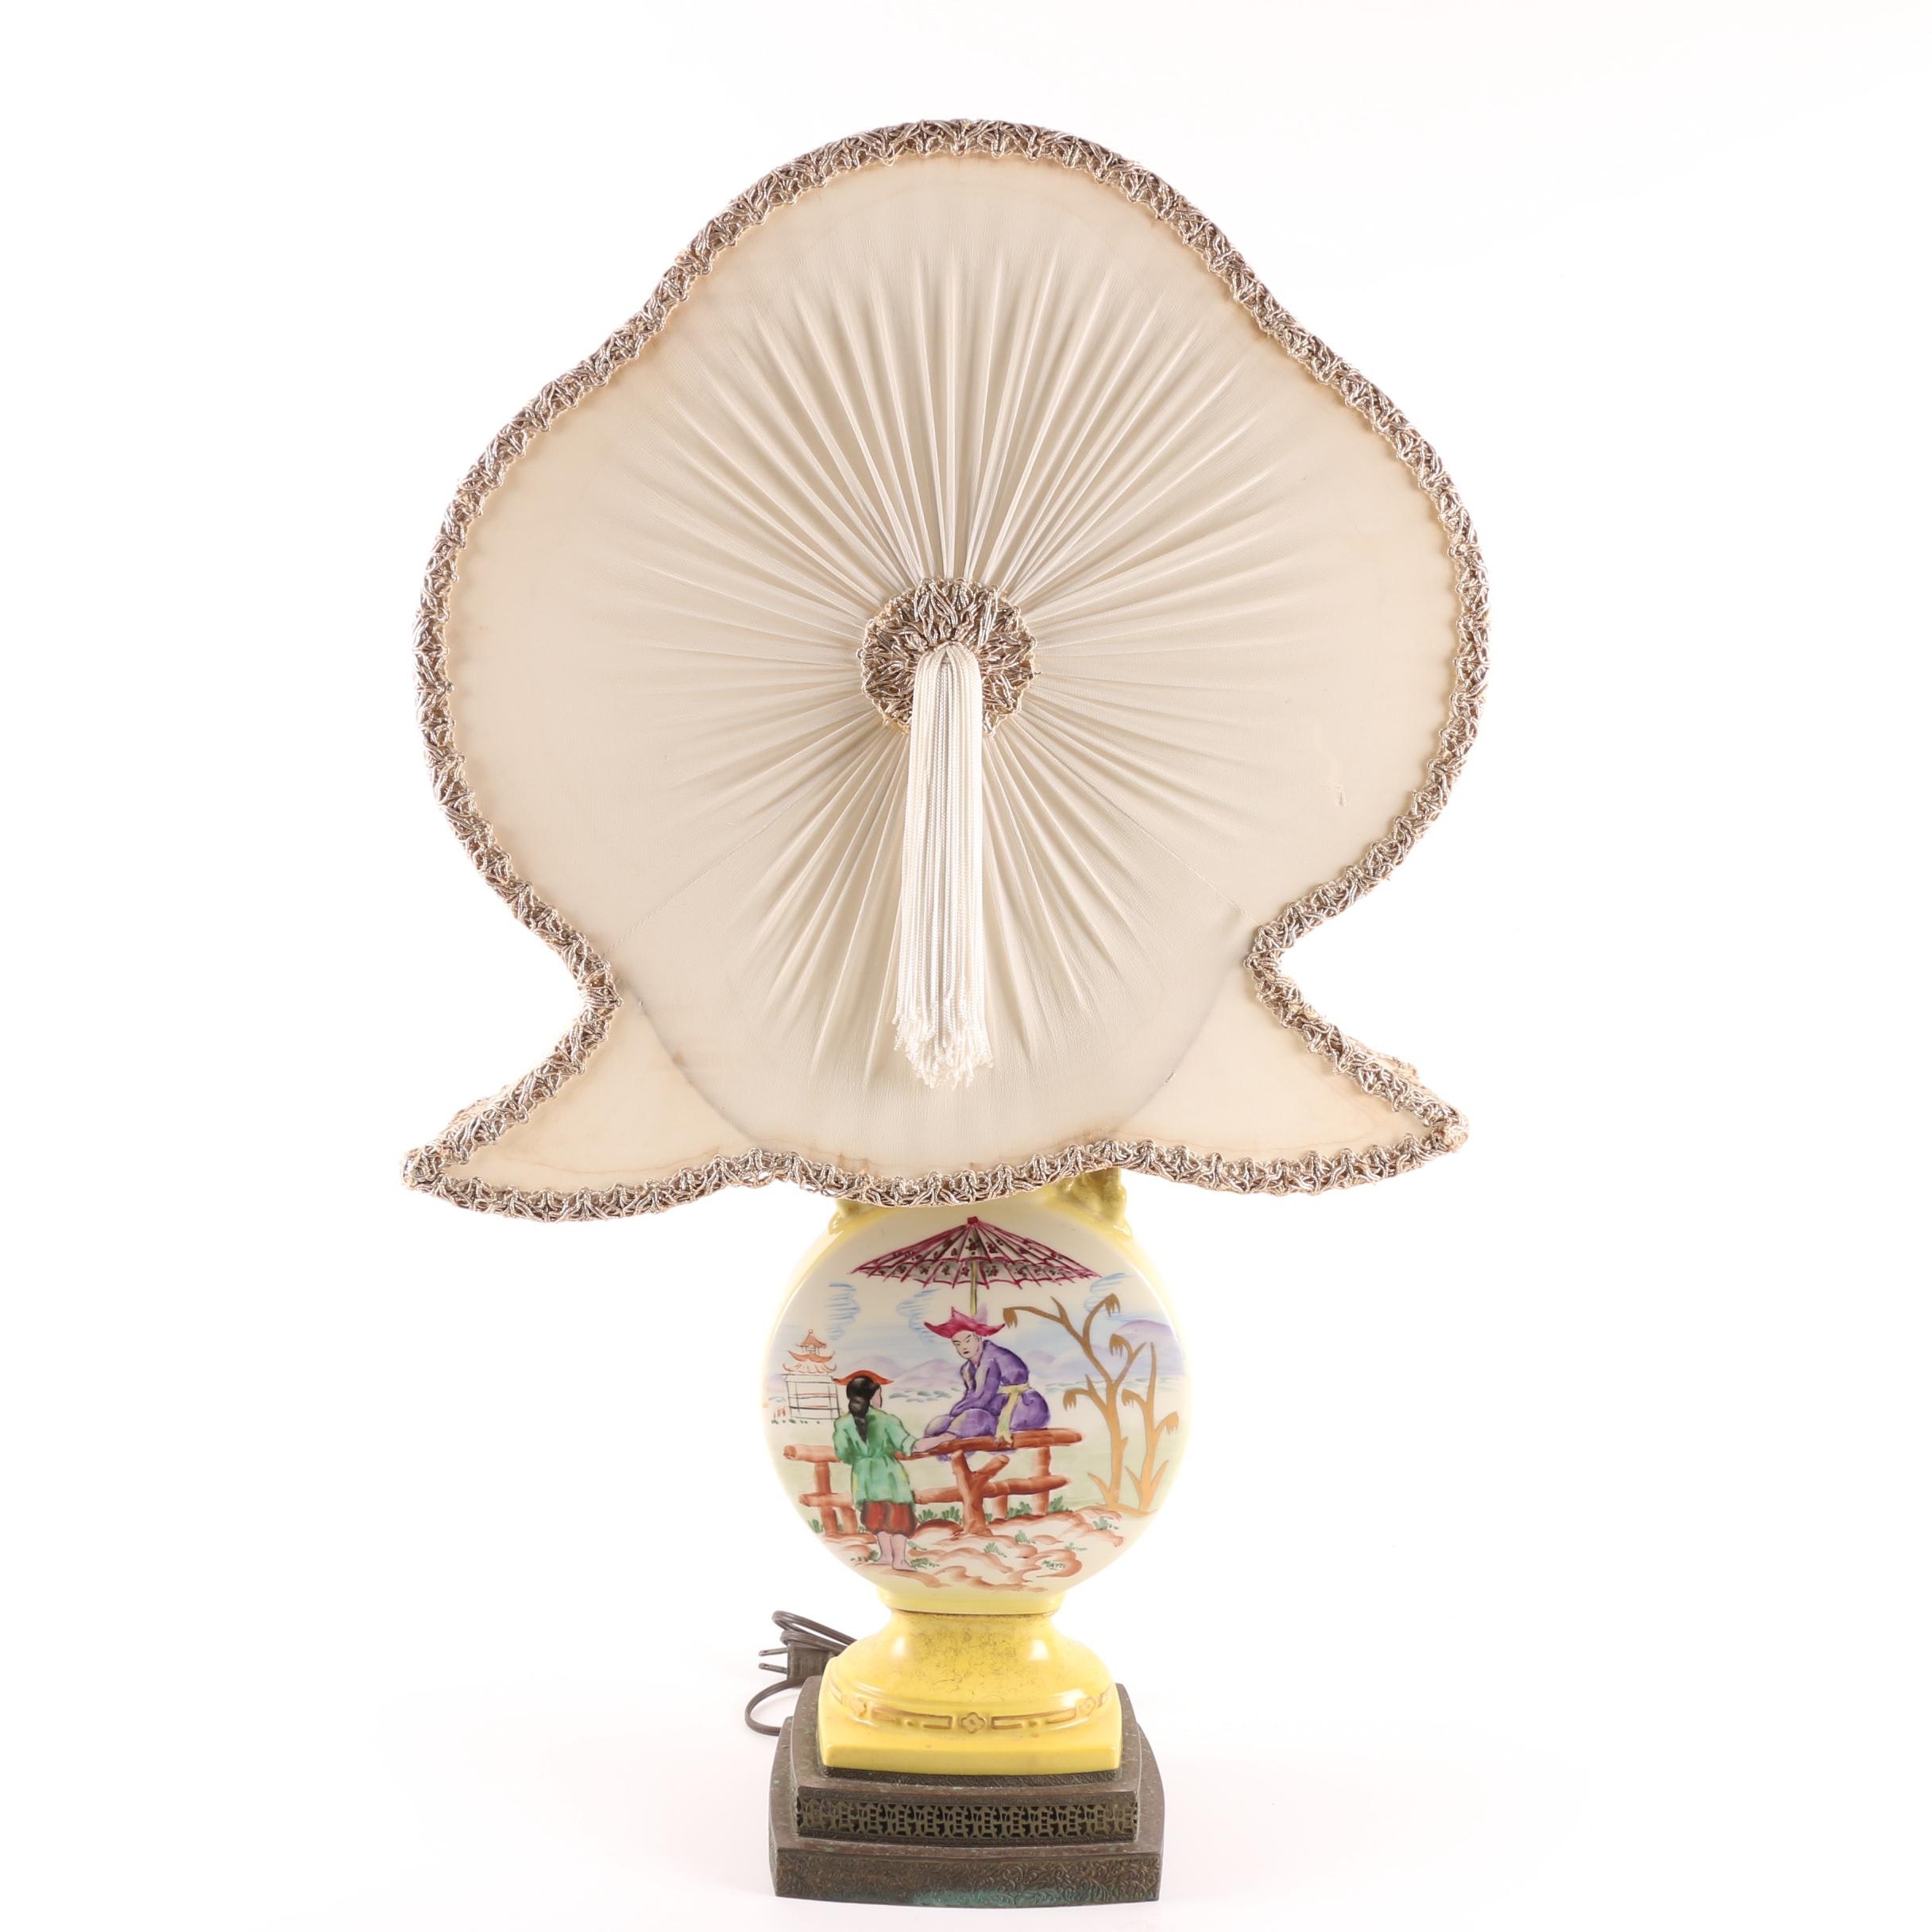 Asian Themed Ceramic Lamp with Fan Shade